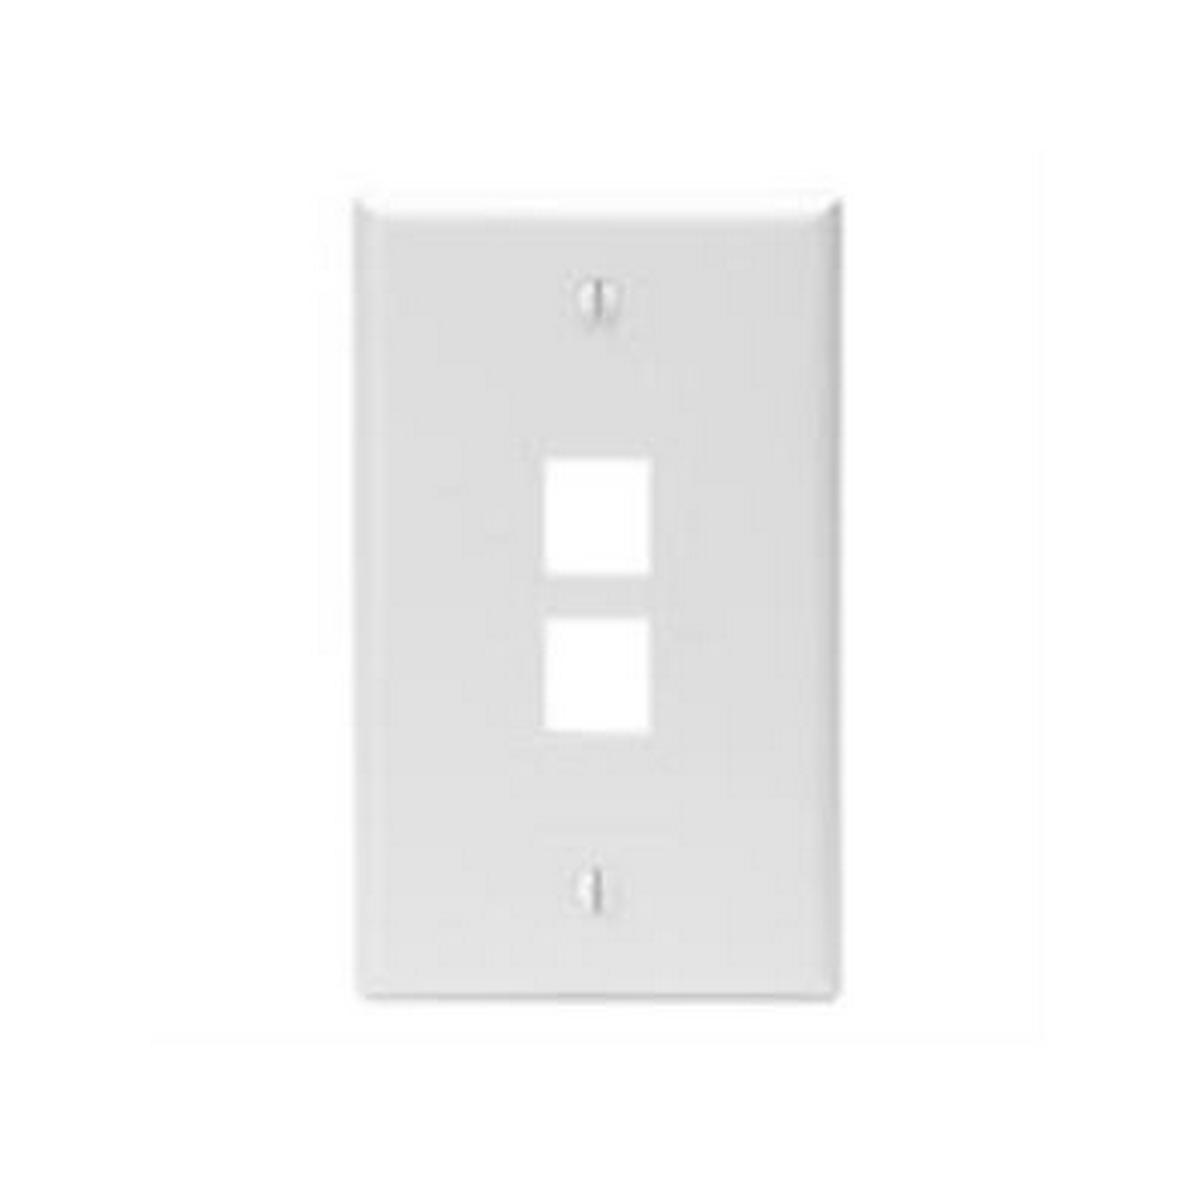 2-port, 1 gang, QuickPort Wallplate, single gang, , white